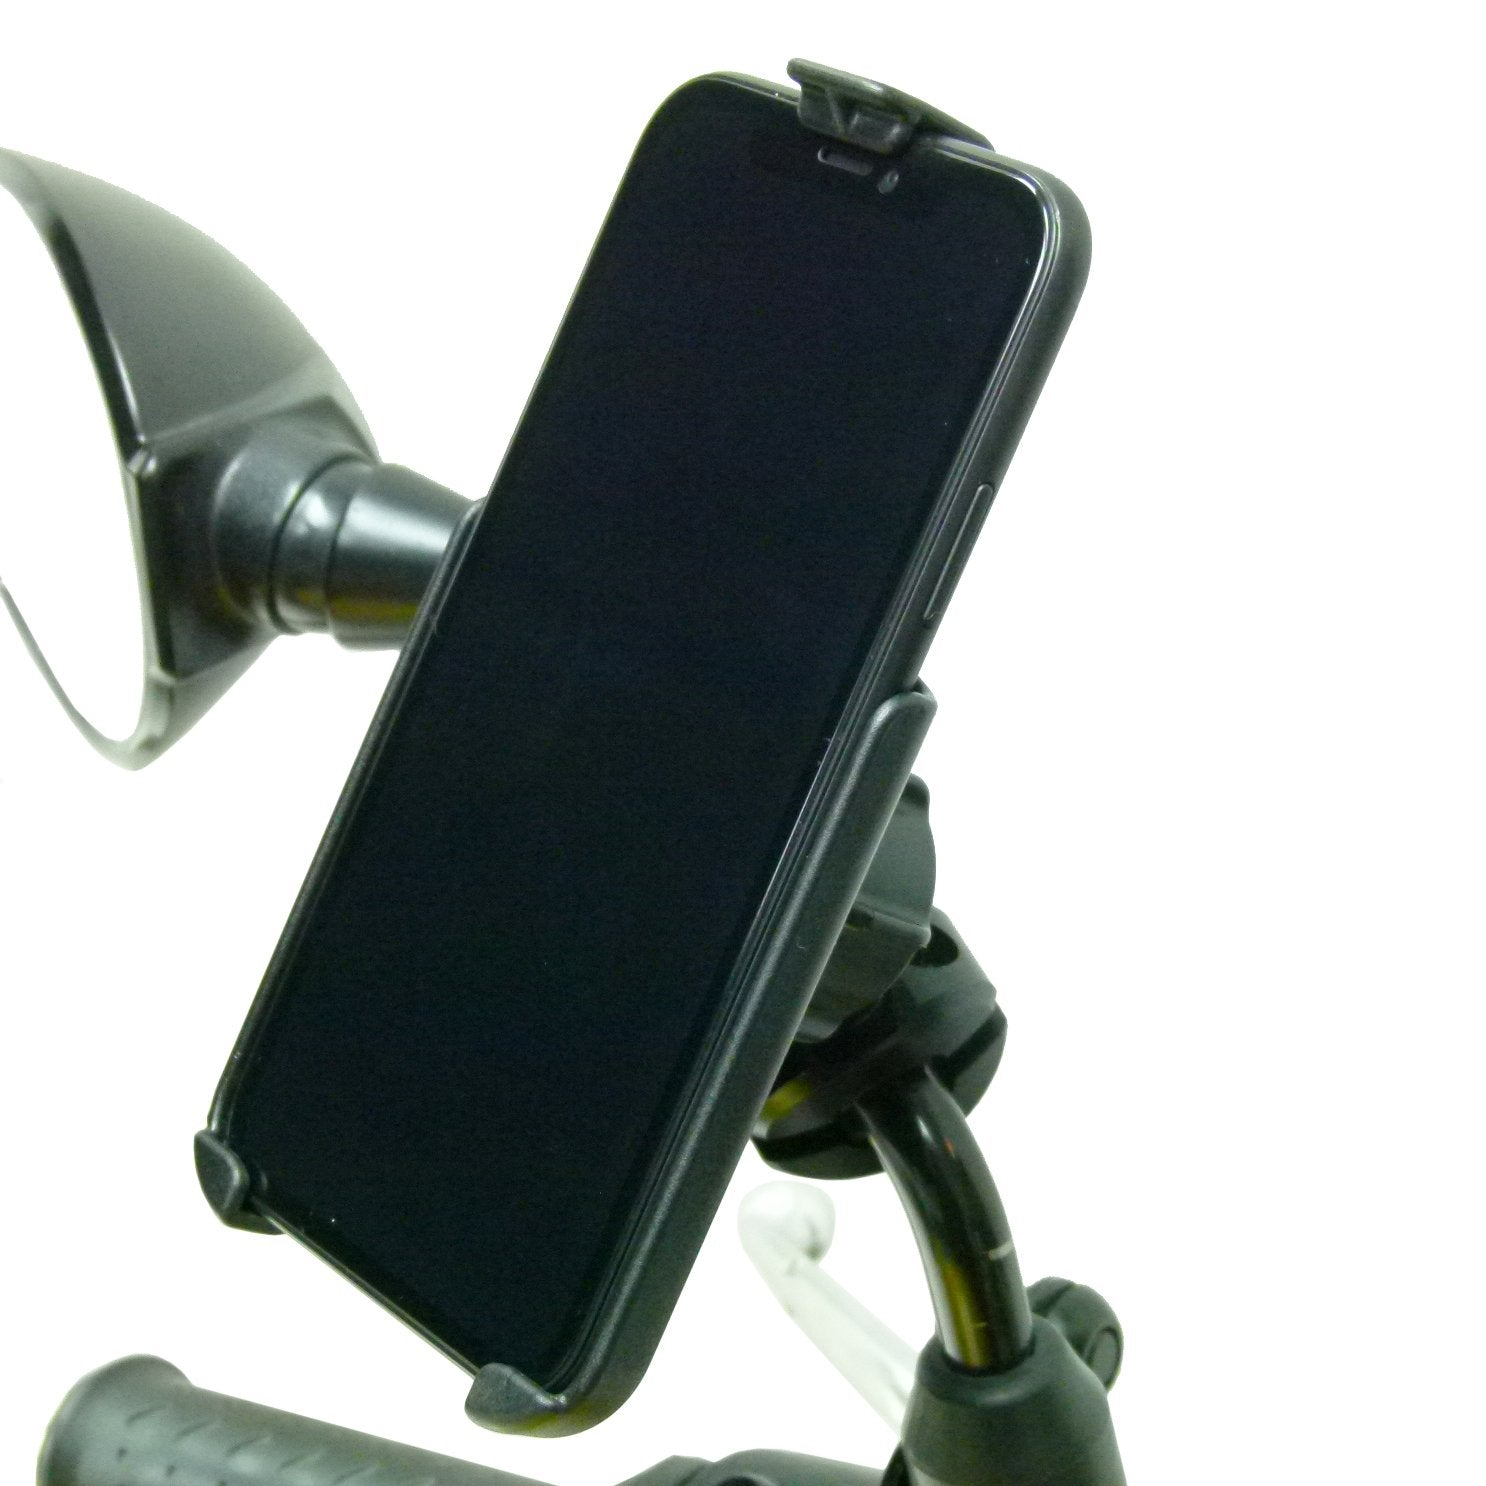 Motorcycle - Scooter Mirror Mount with Dedicated RAM Holder for iPhone 11 (sku 50291) - BuyBits Ltd UK